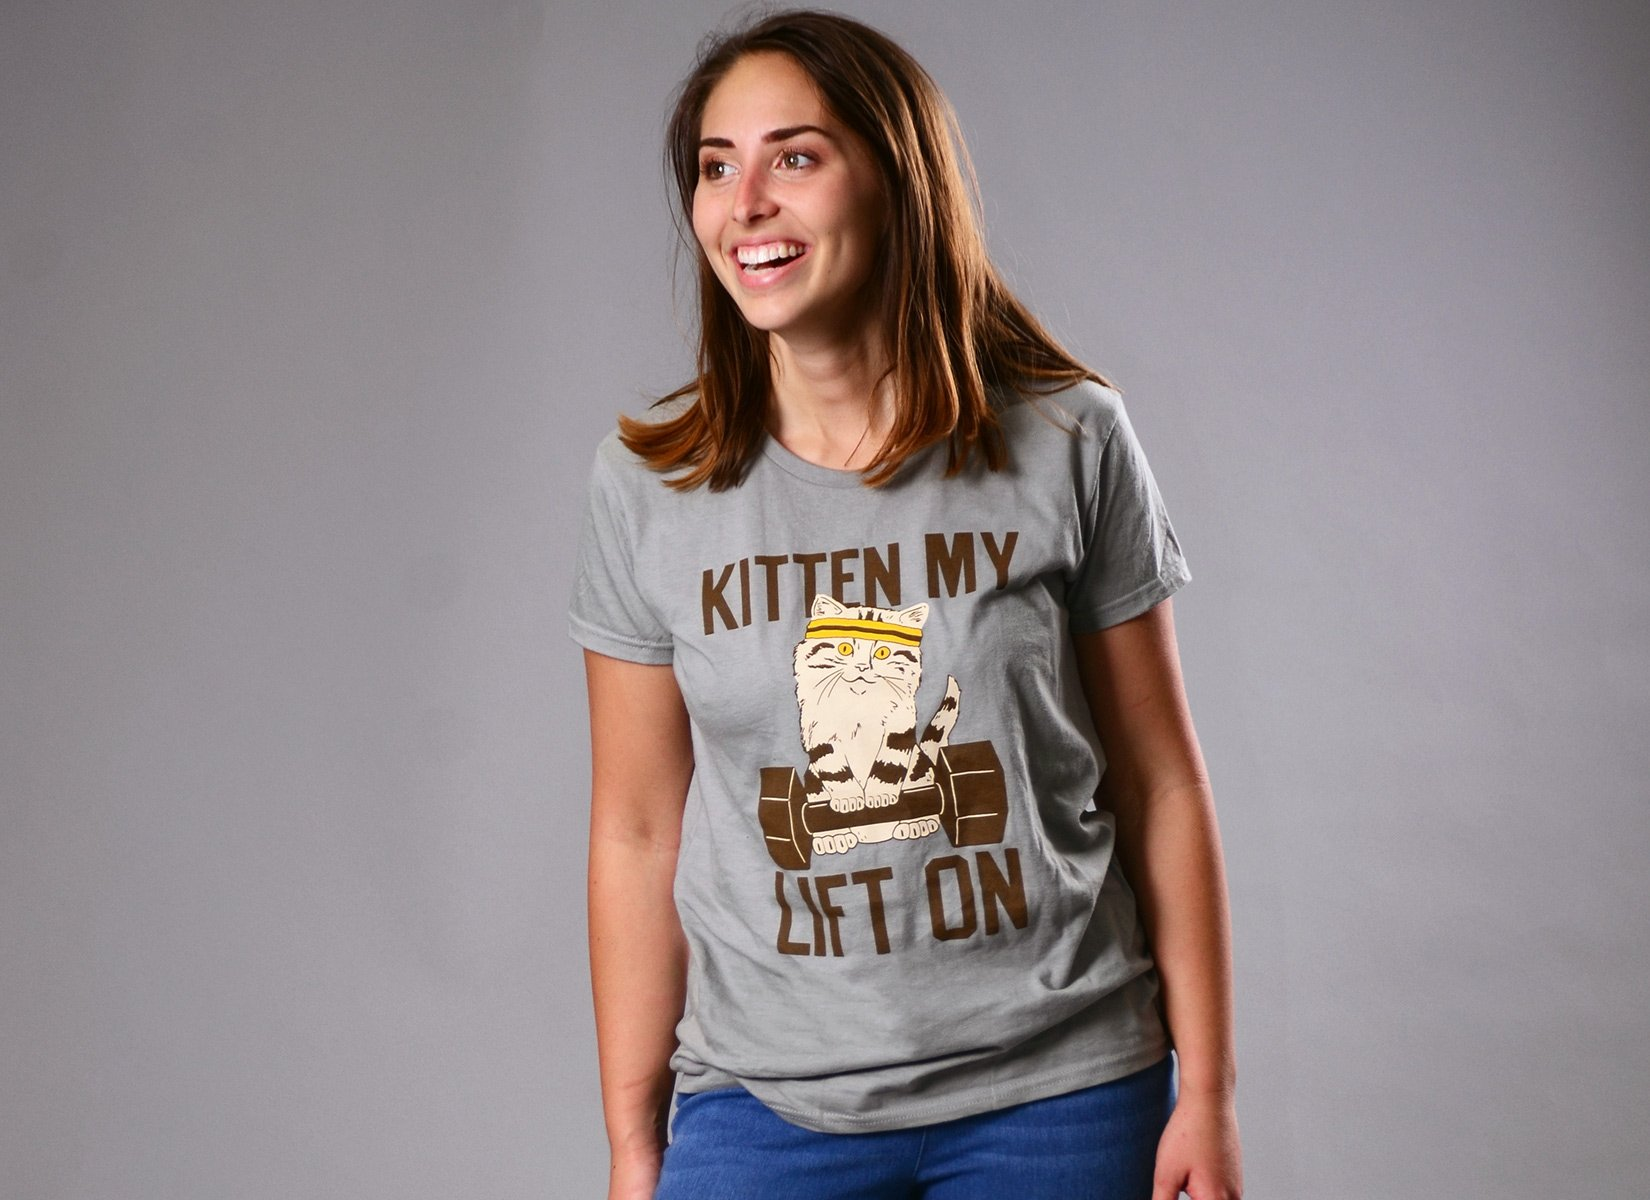 Kitten My Lift On on Womens T-Shirt